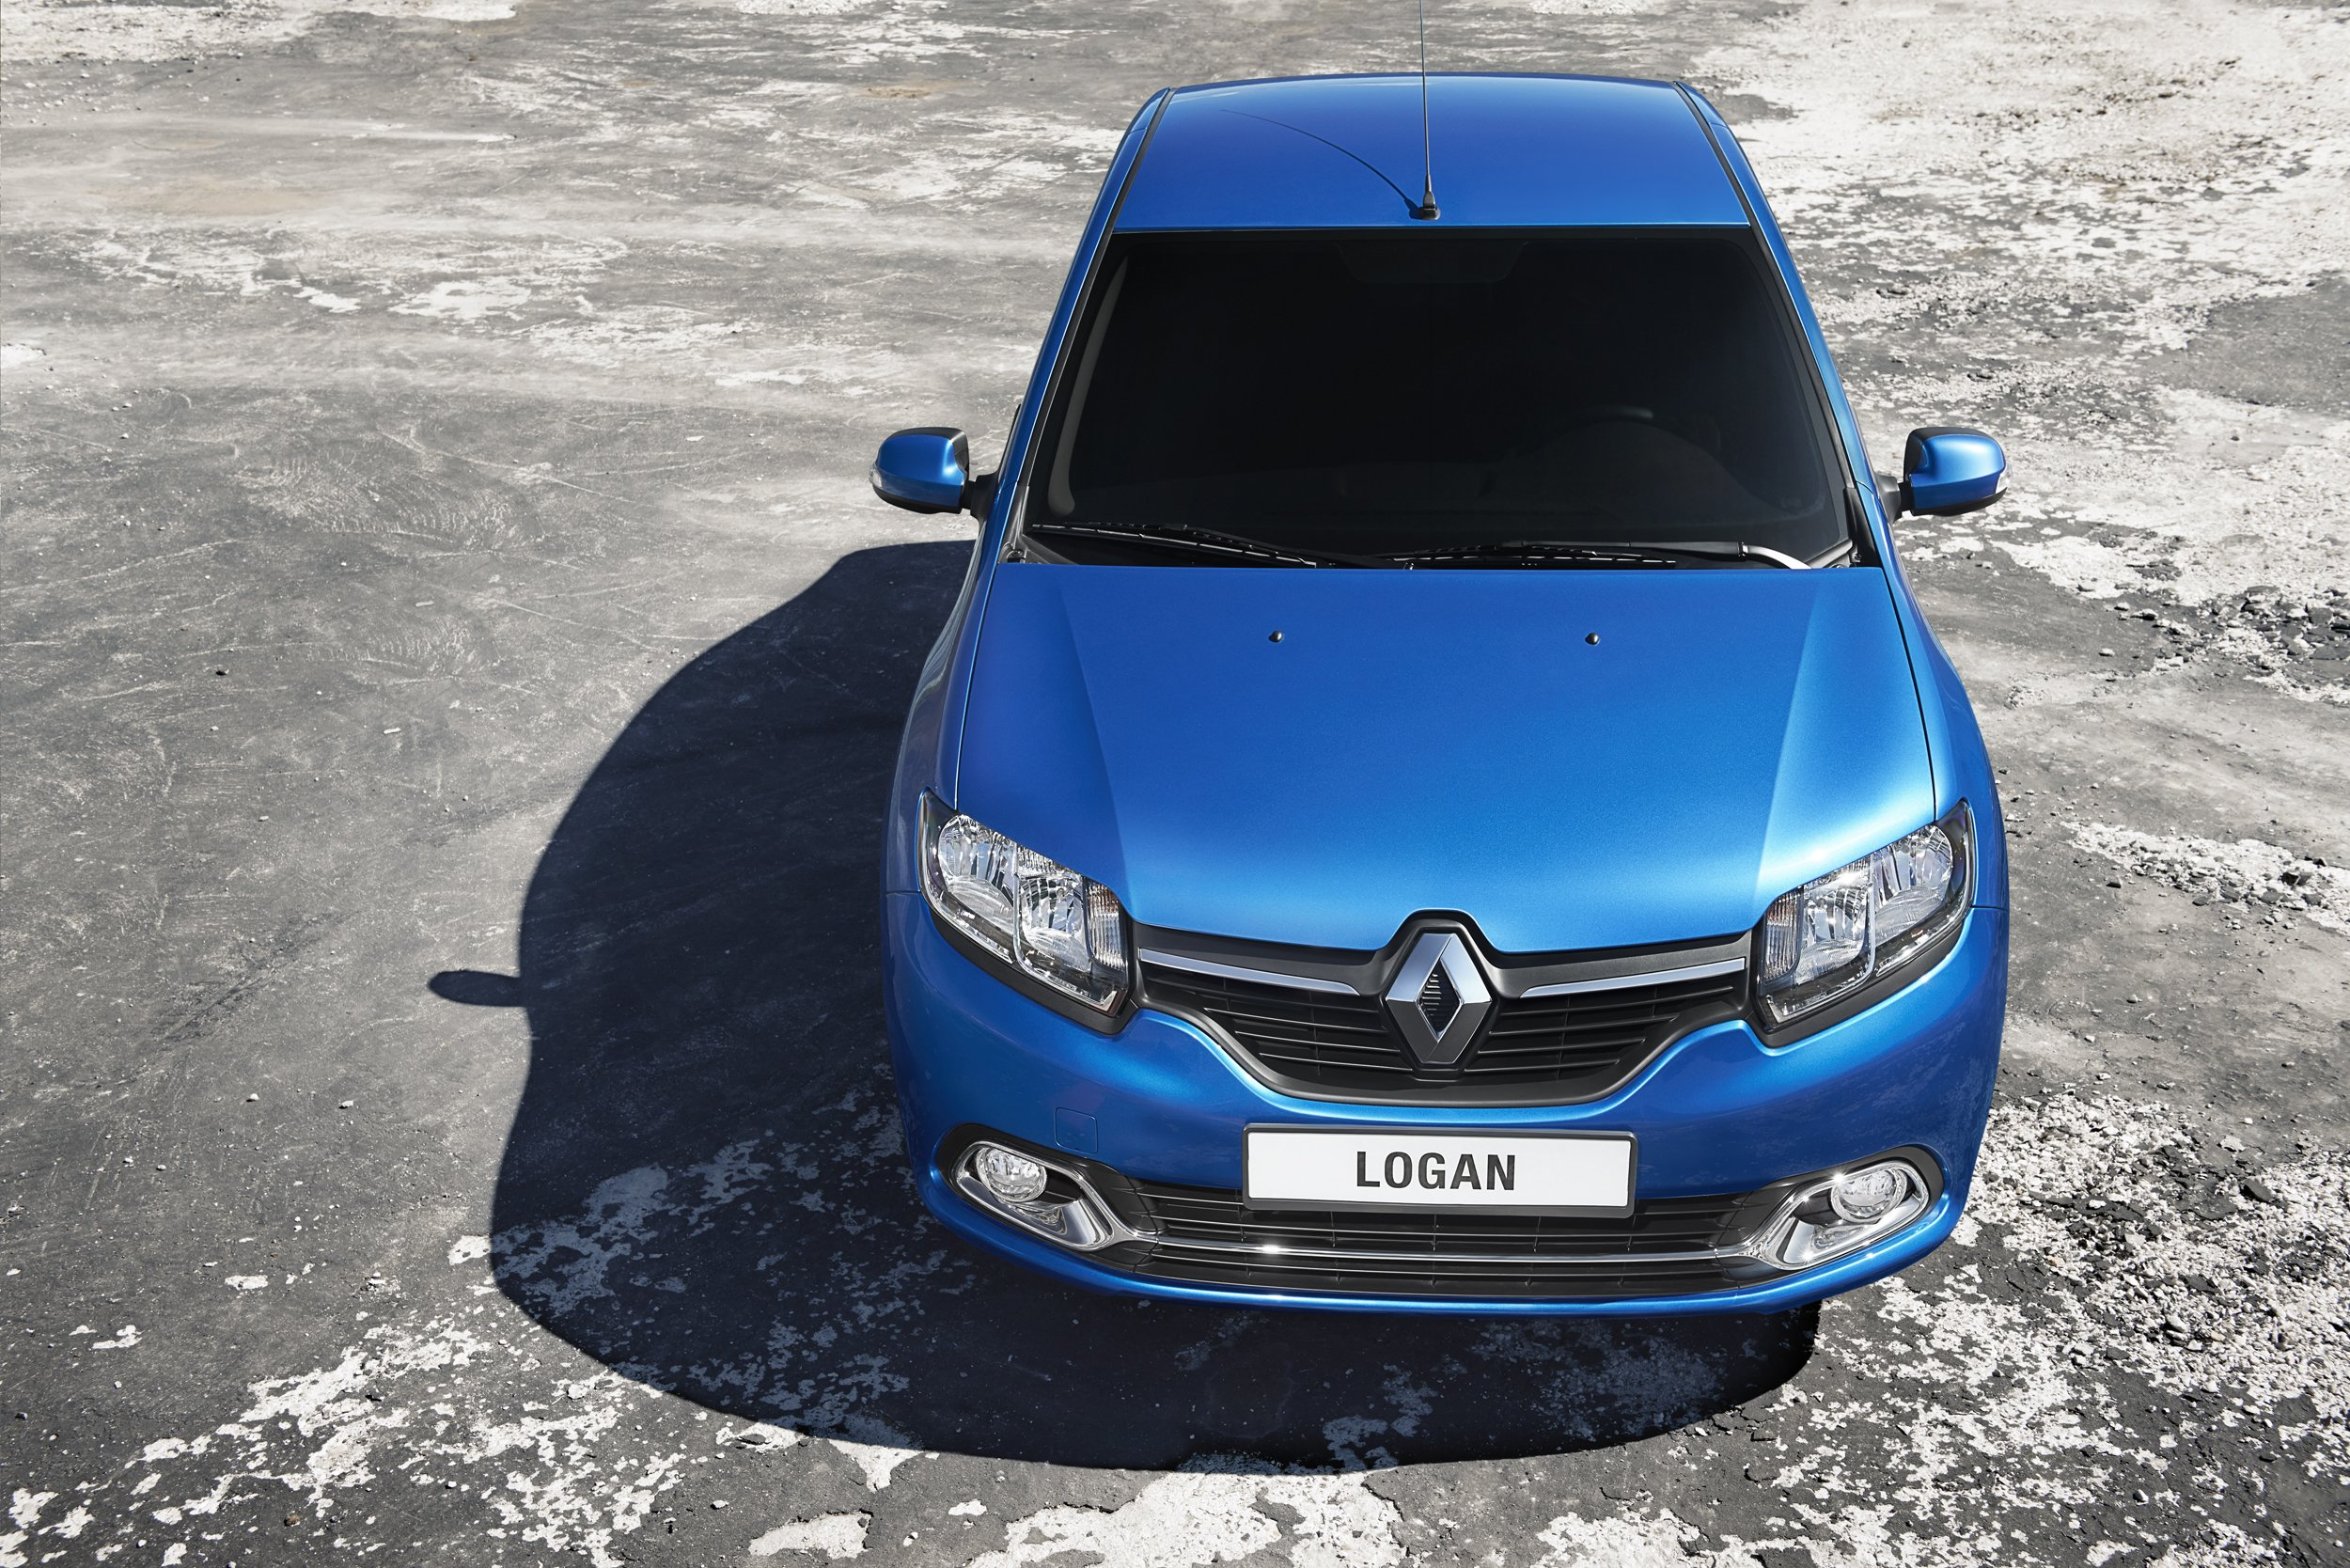 new-renault-logan (18)